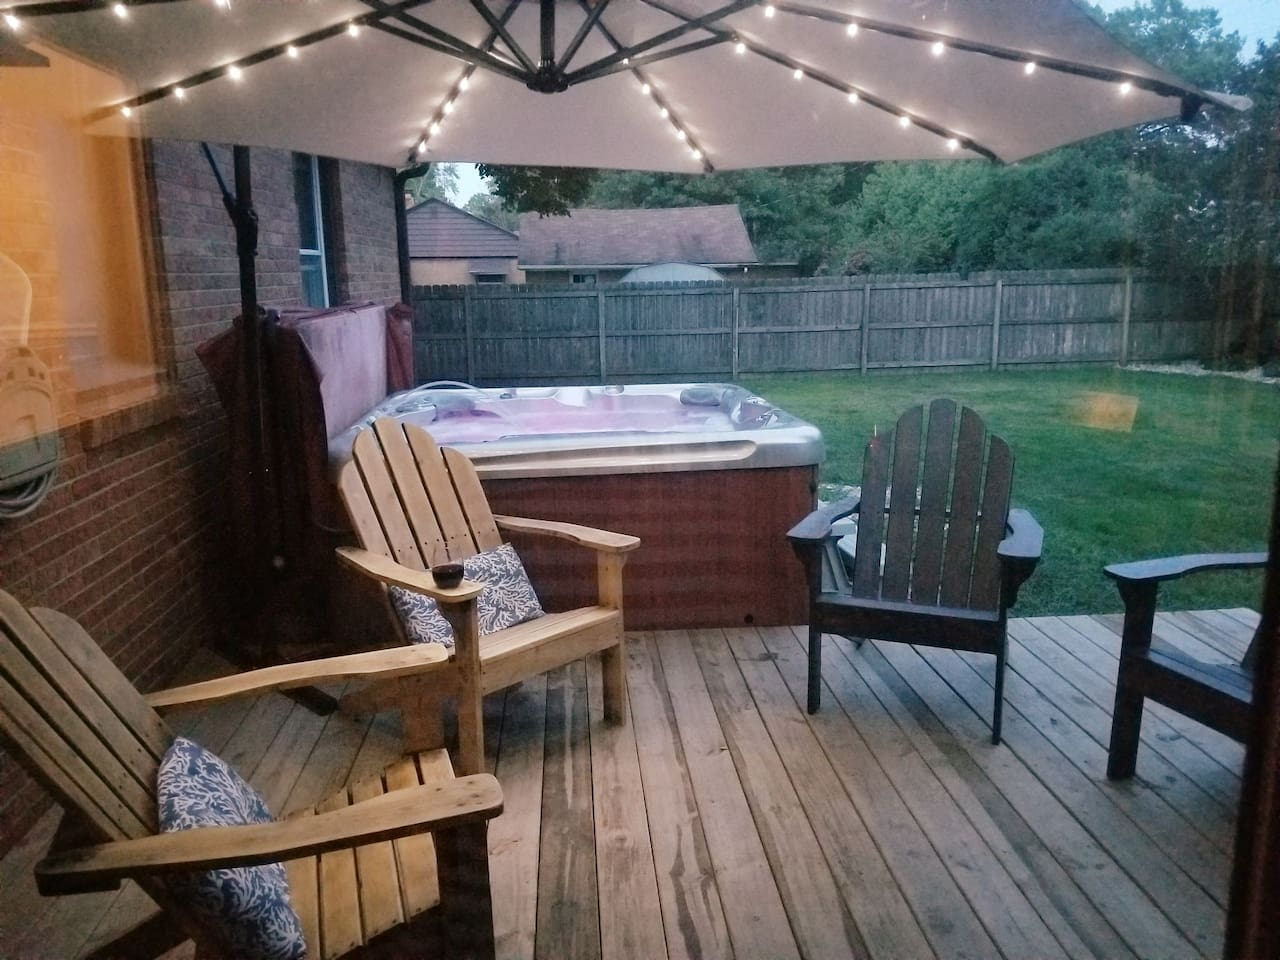 Hot tub and solar lit awning. Privacy fenced backyard.  Adirondack chairs for your enjoyment during warmer months.